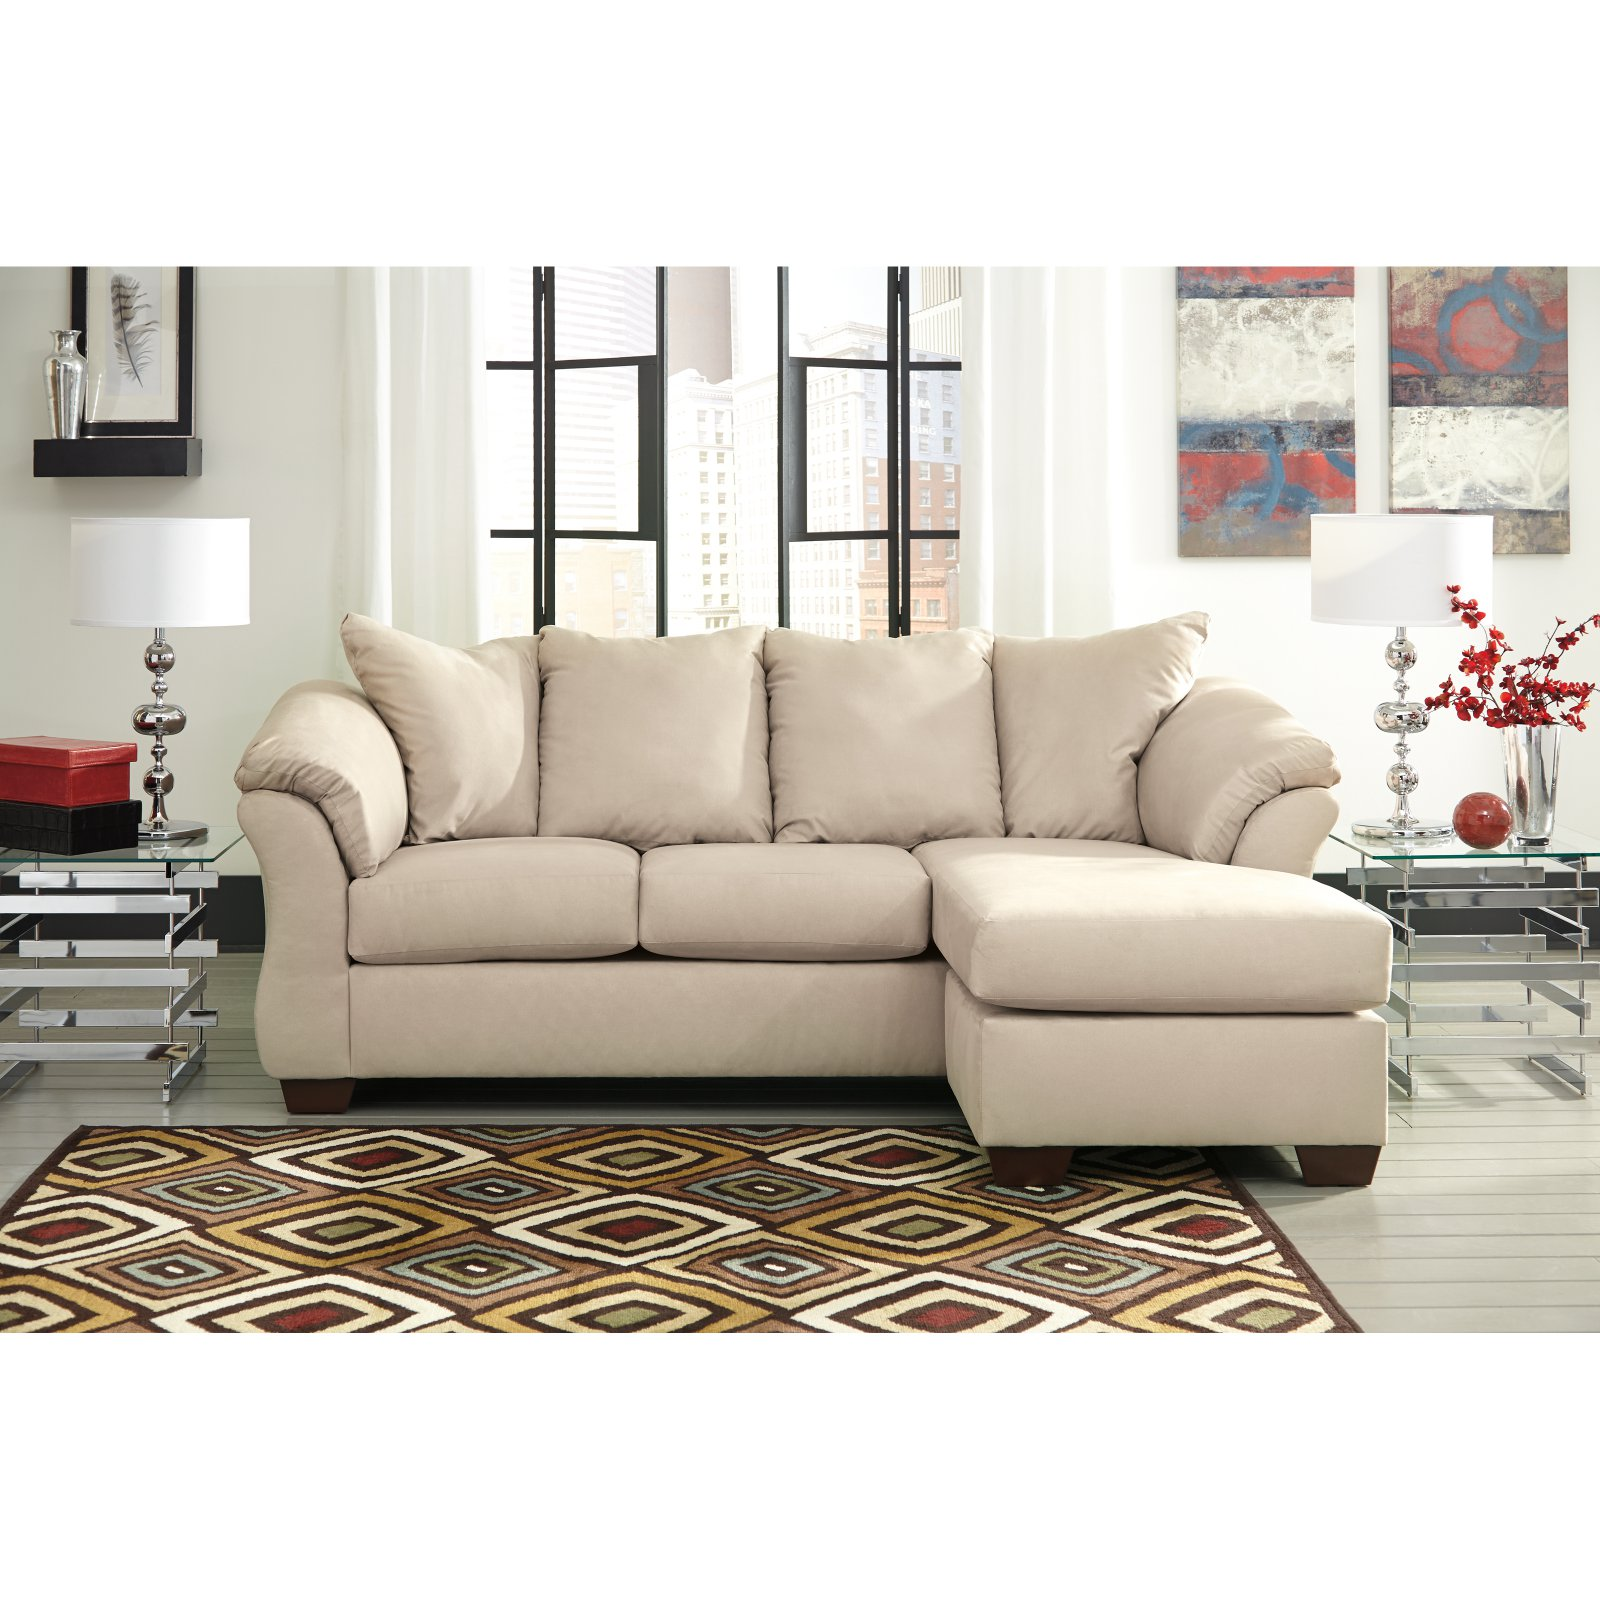 Ordinaire Signature Design By Ashley Darcy Sofa Chaise